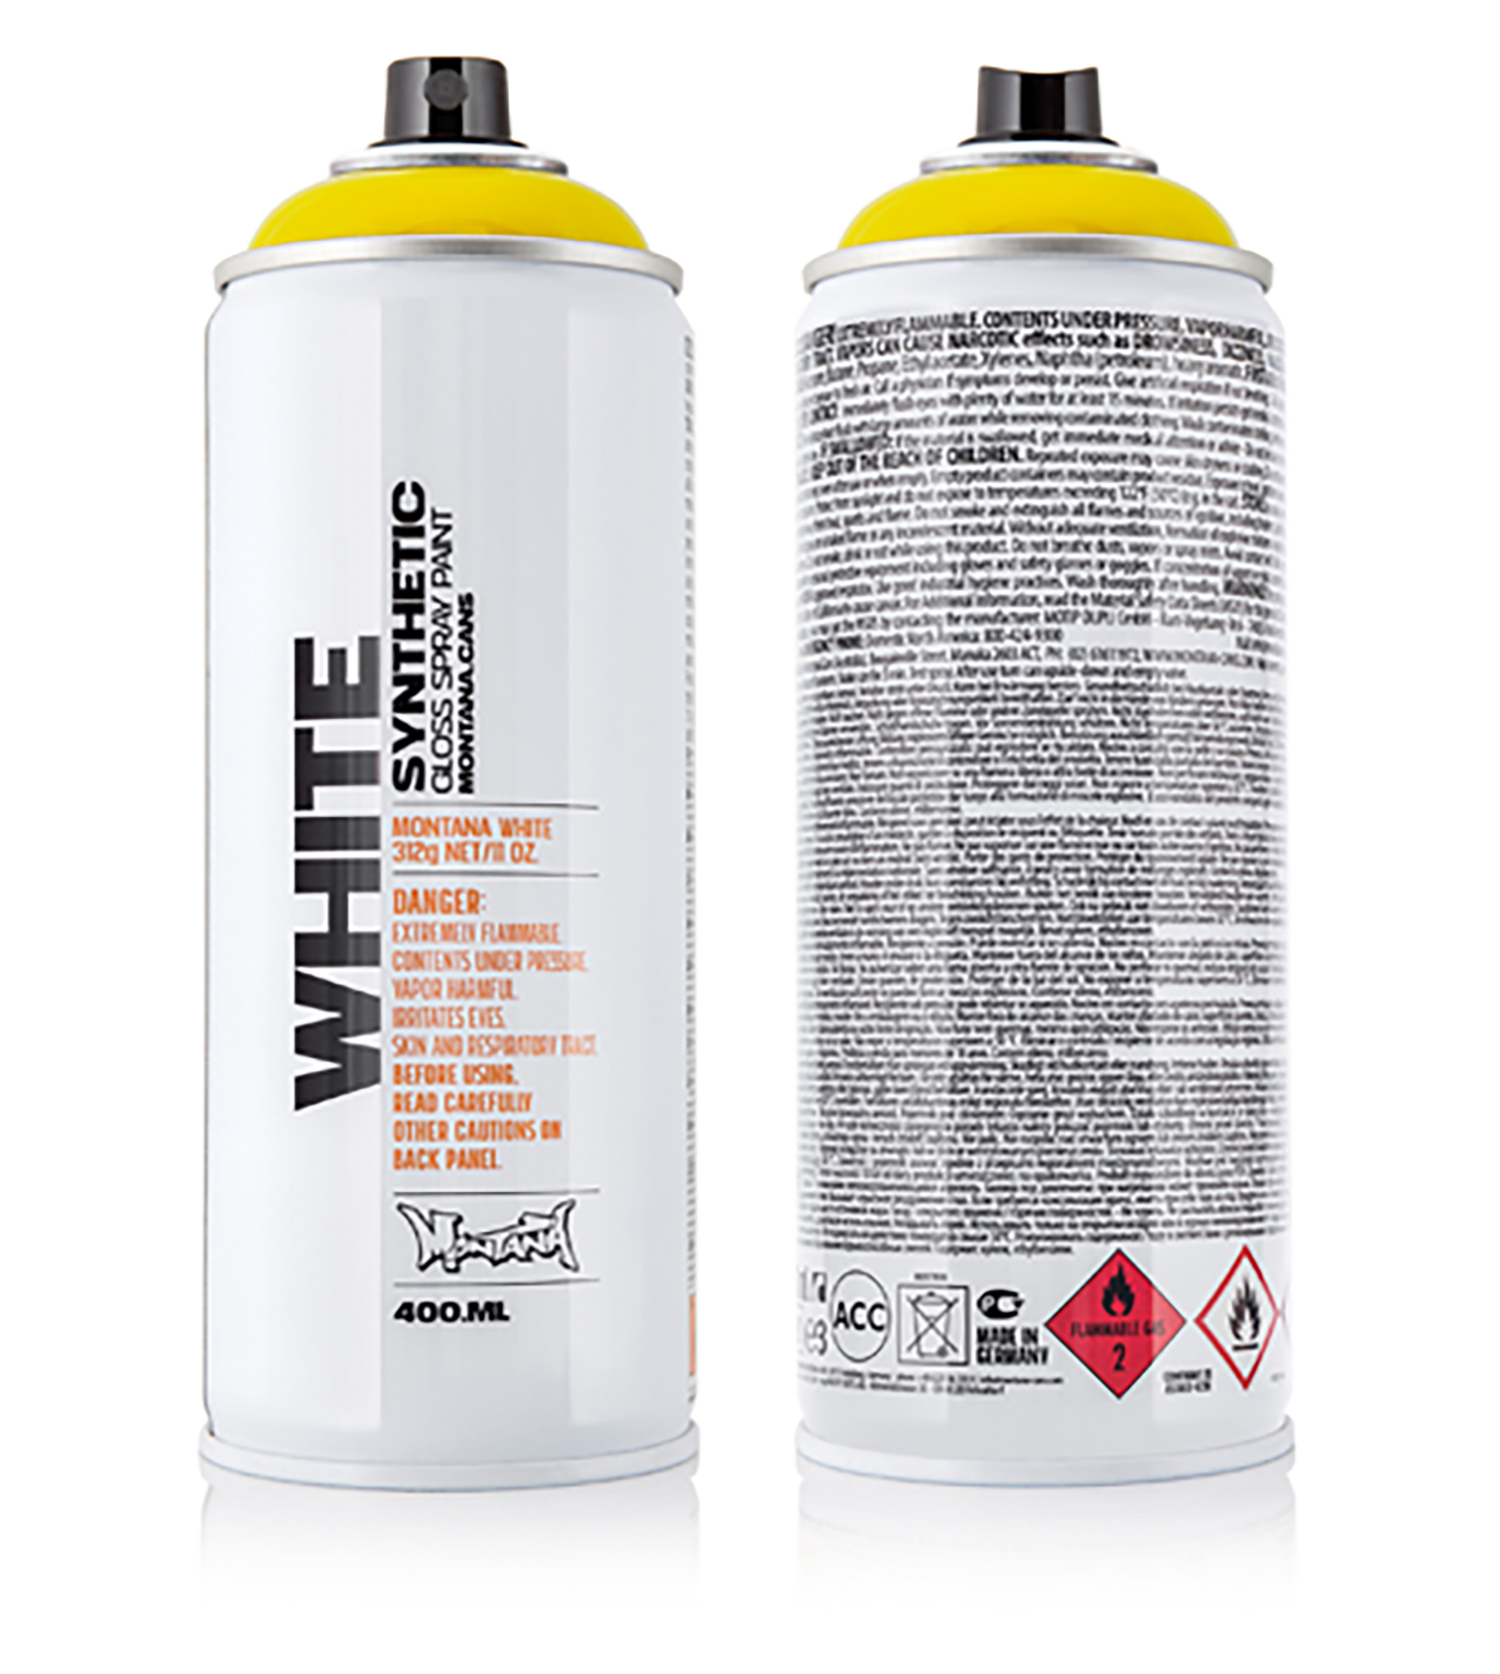 MONTANA-WHITE-SPRAY-400ML-1300